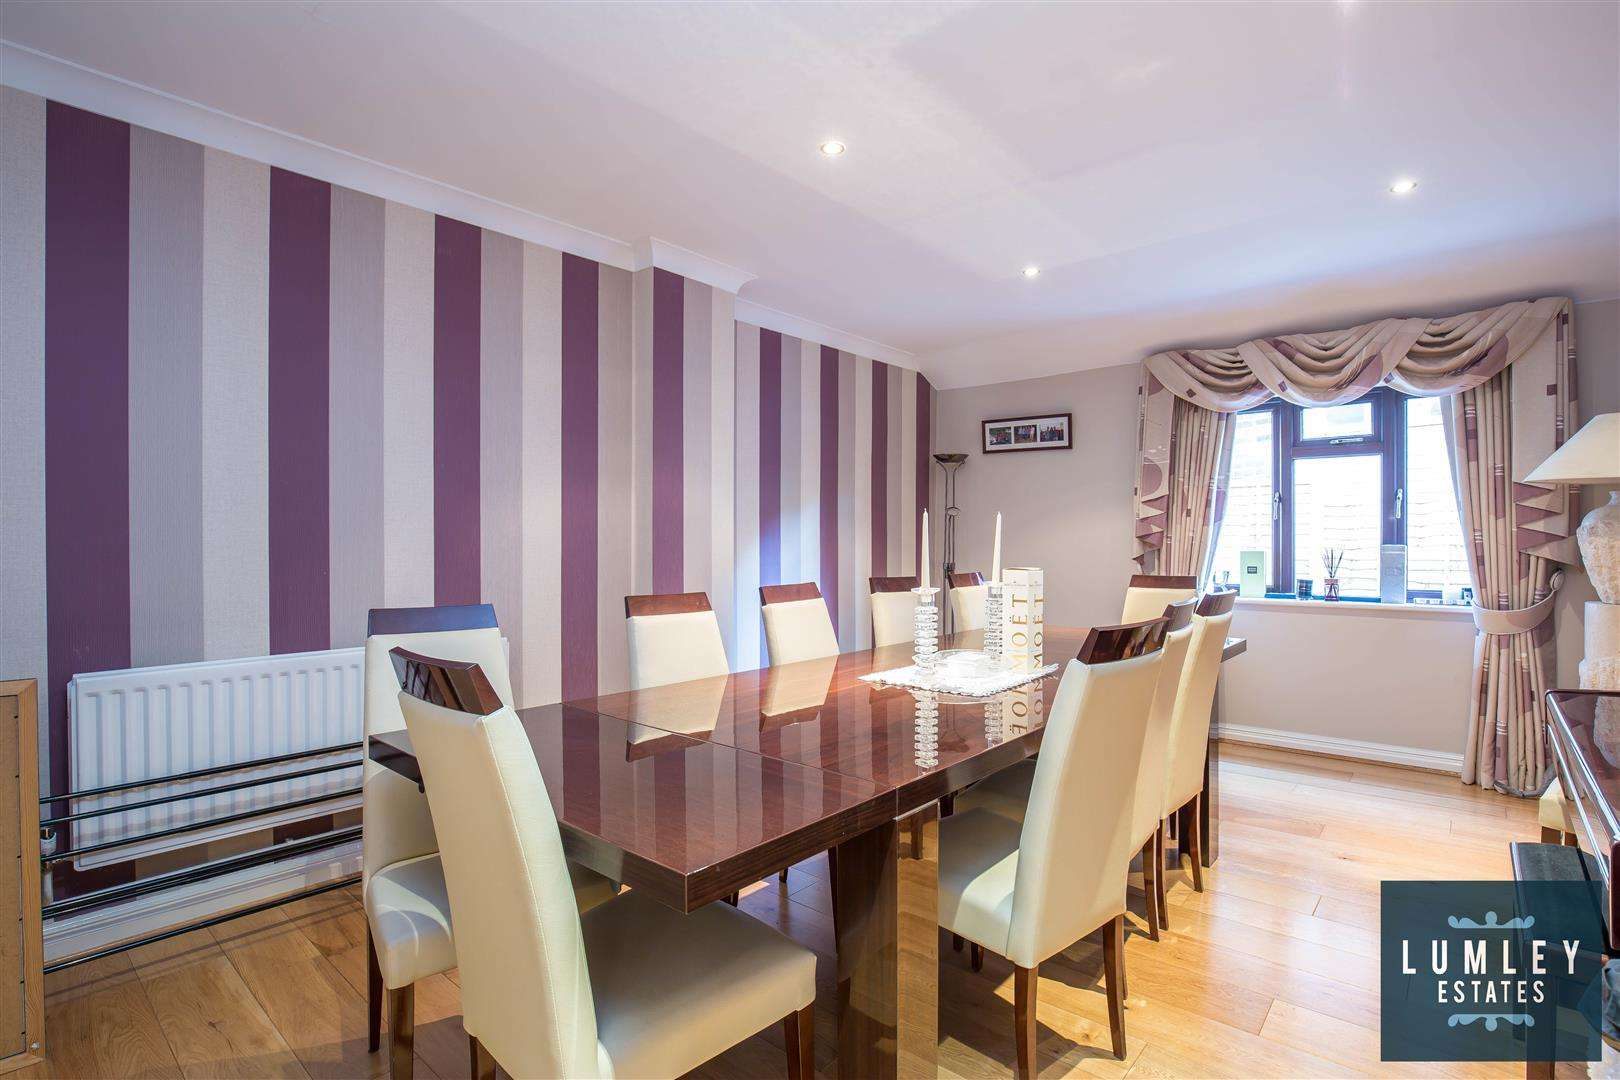 6 bed to rent - (Property Image 3)